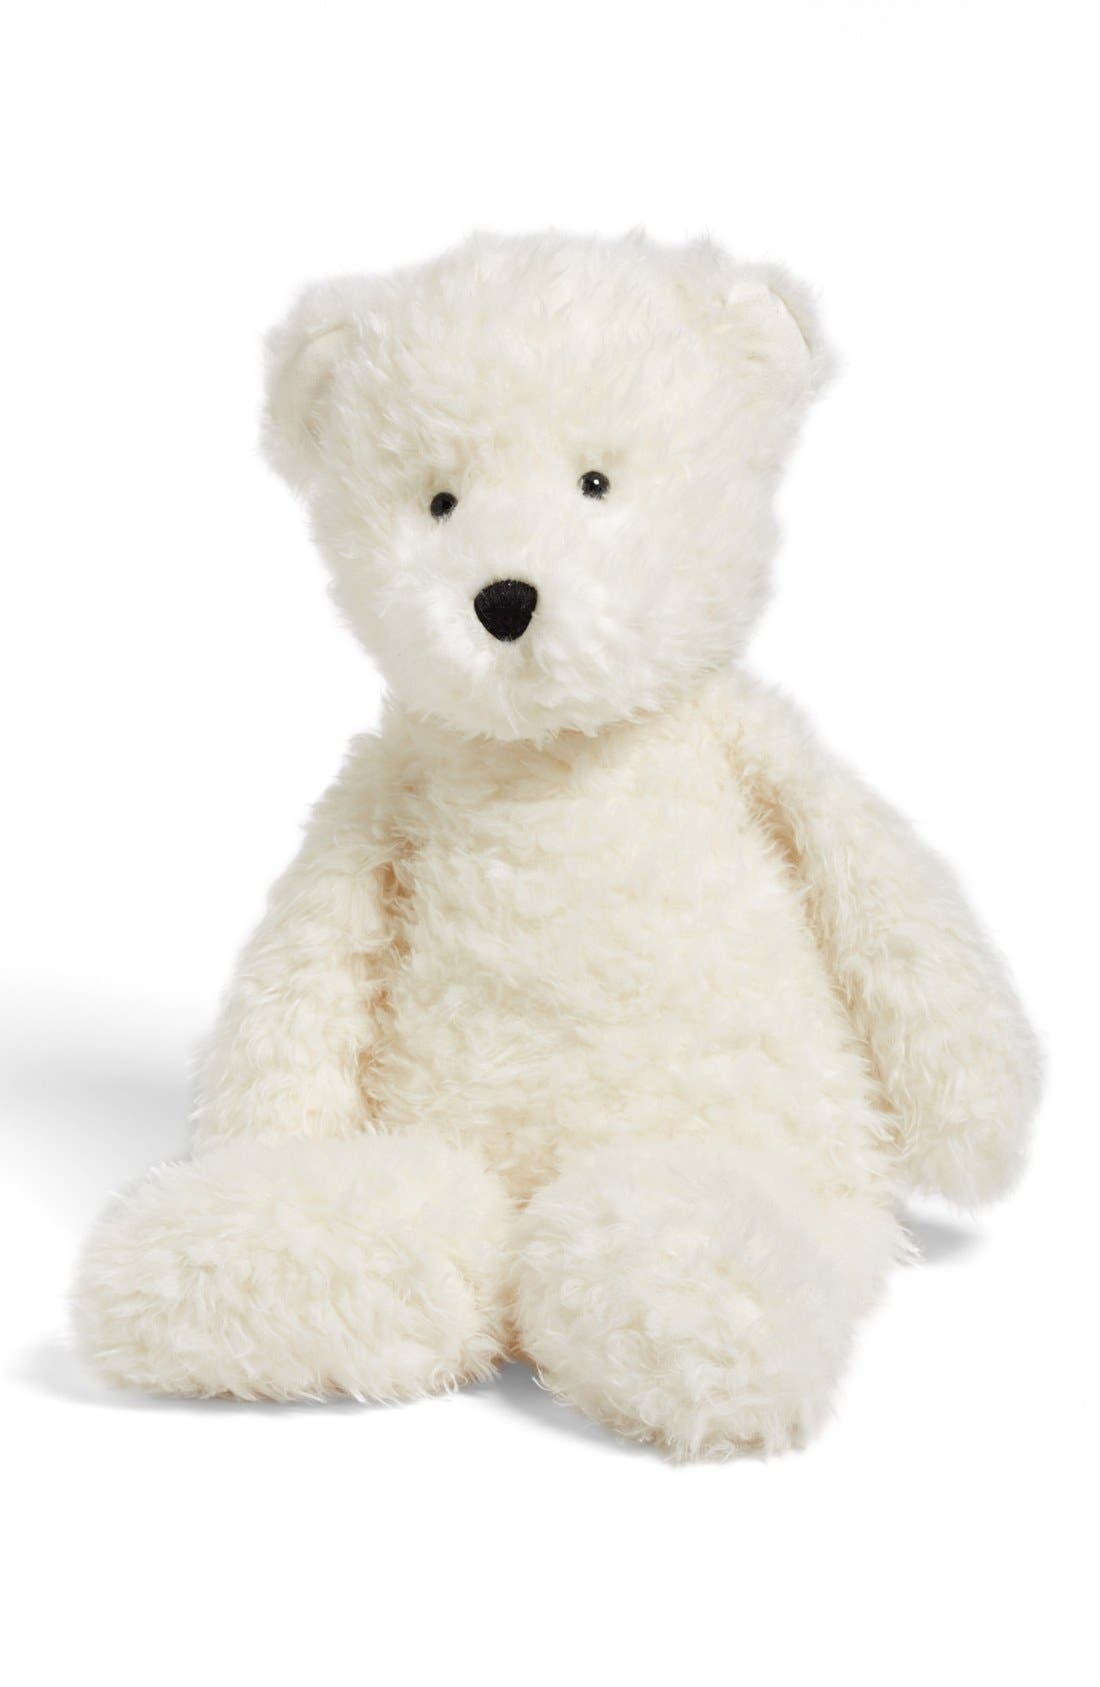 Alternate Image 1 Selected - Jellycat 'Blizzard Bear' Stuffed Animal